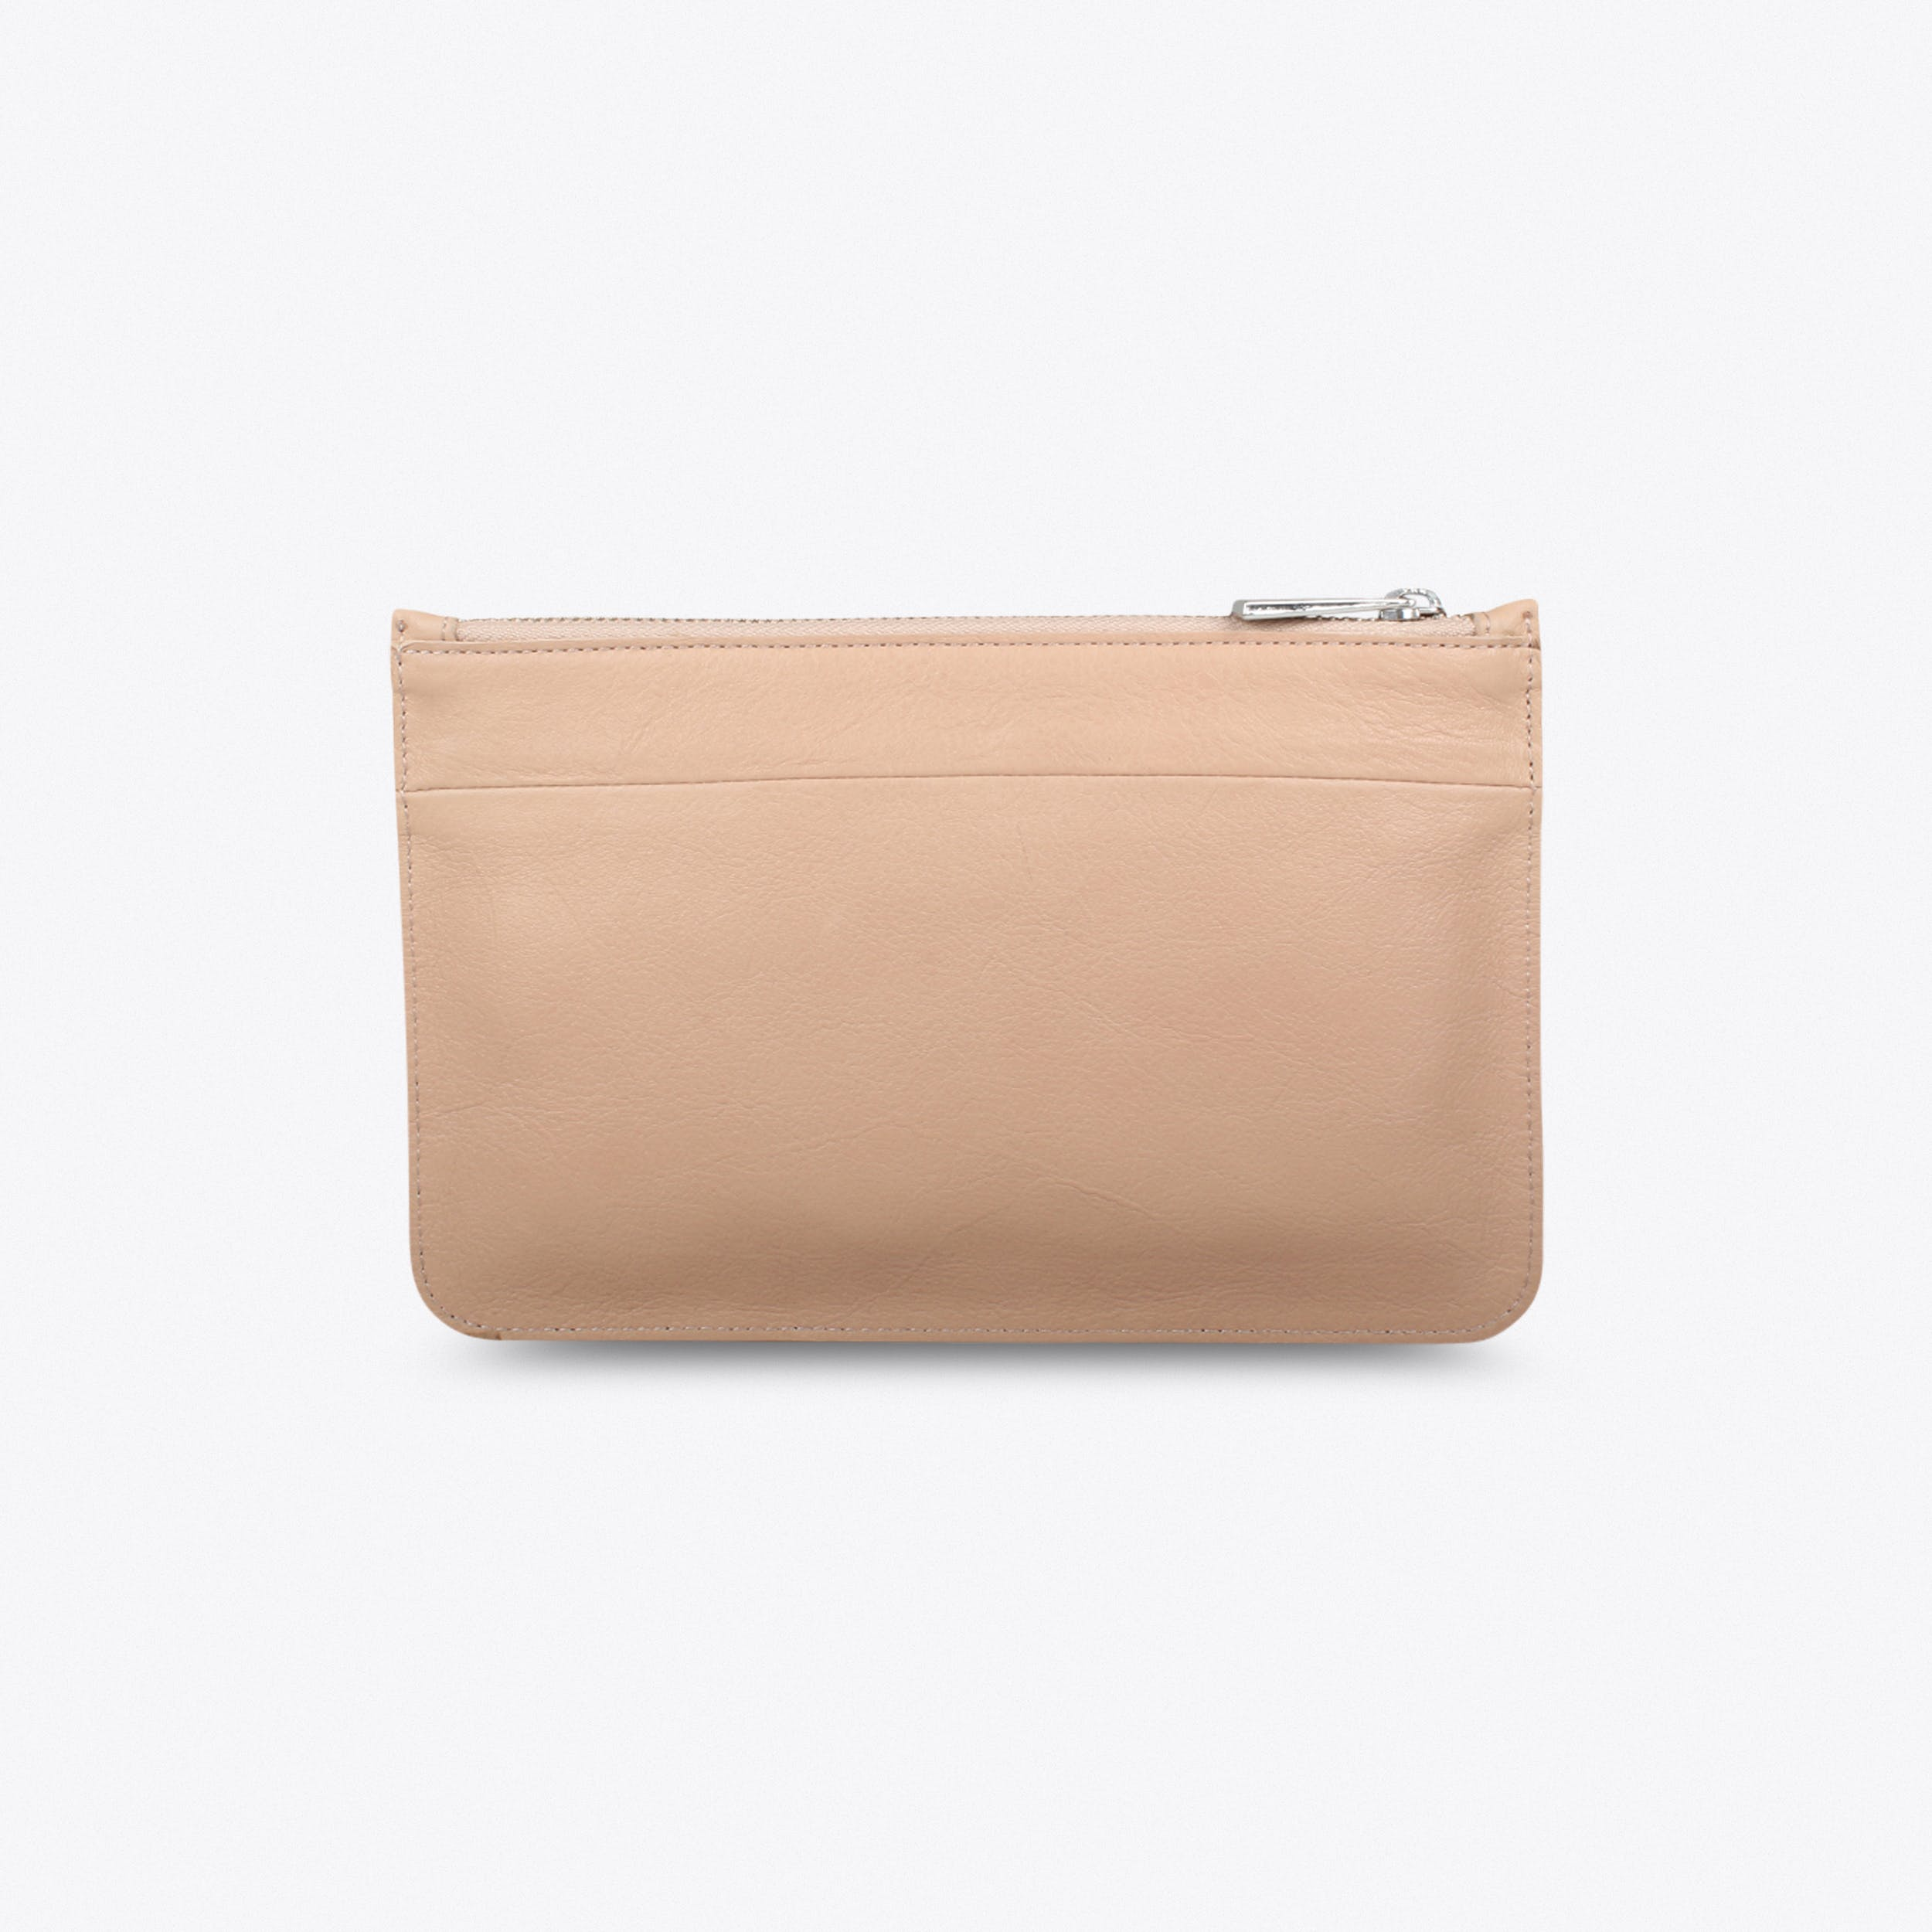 Leather Clutch In Beige